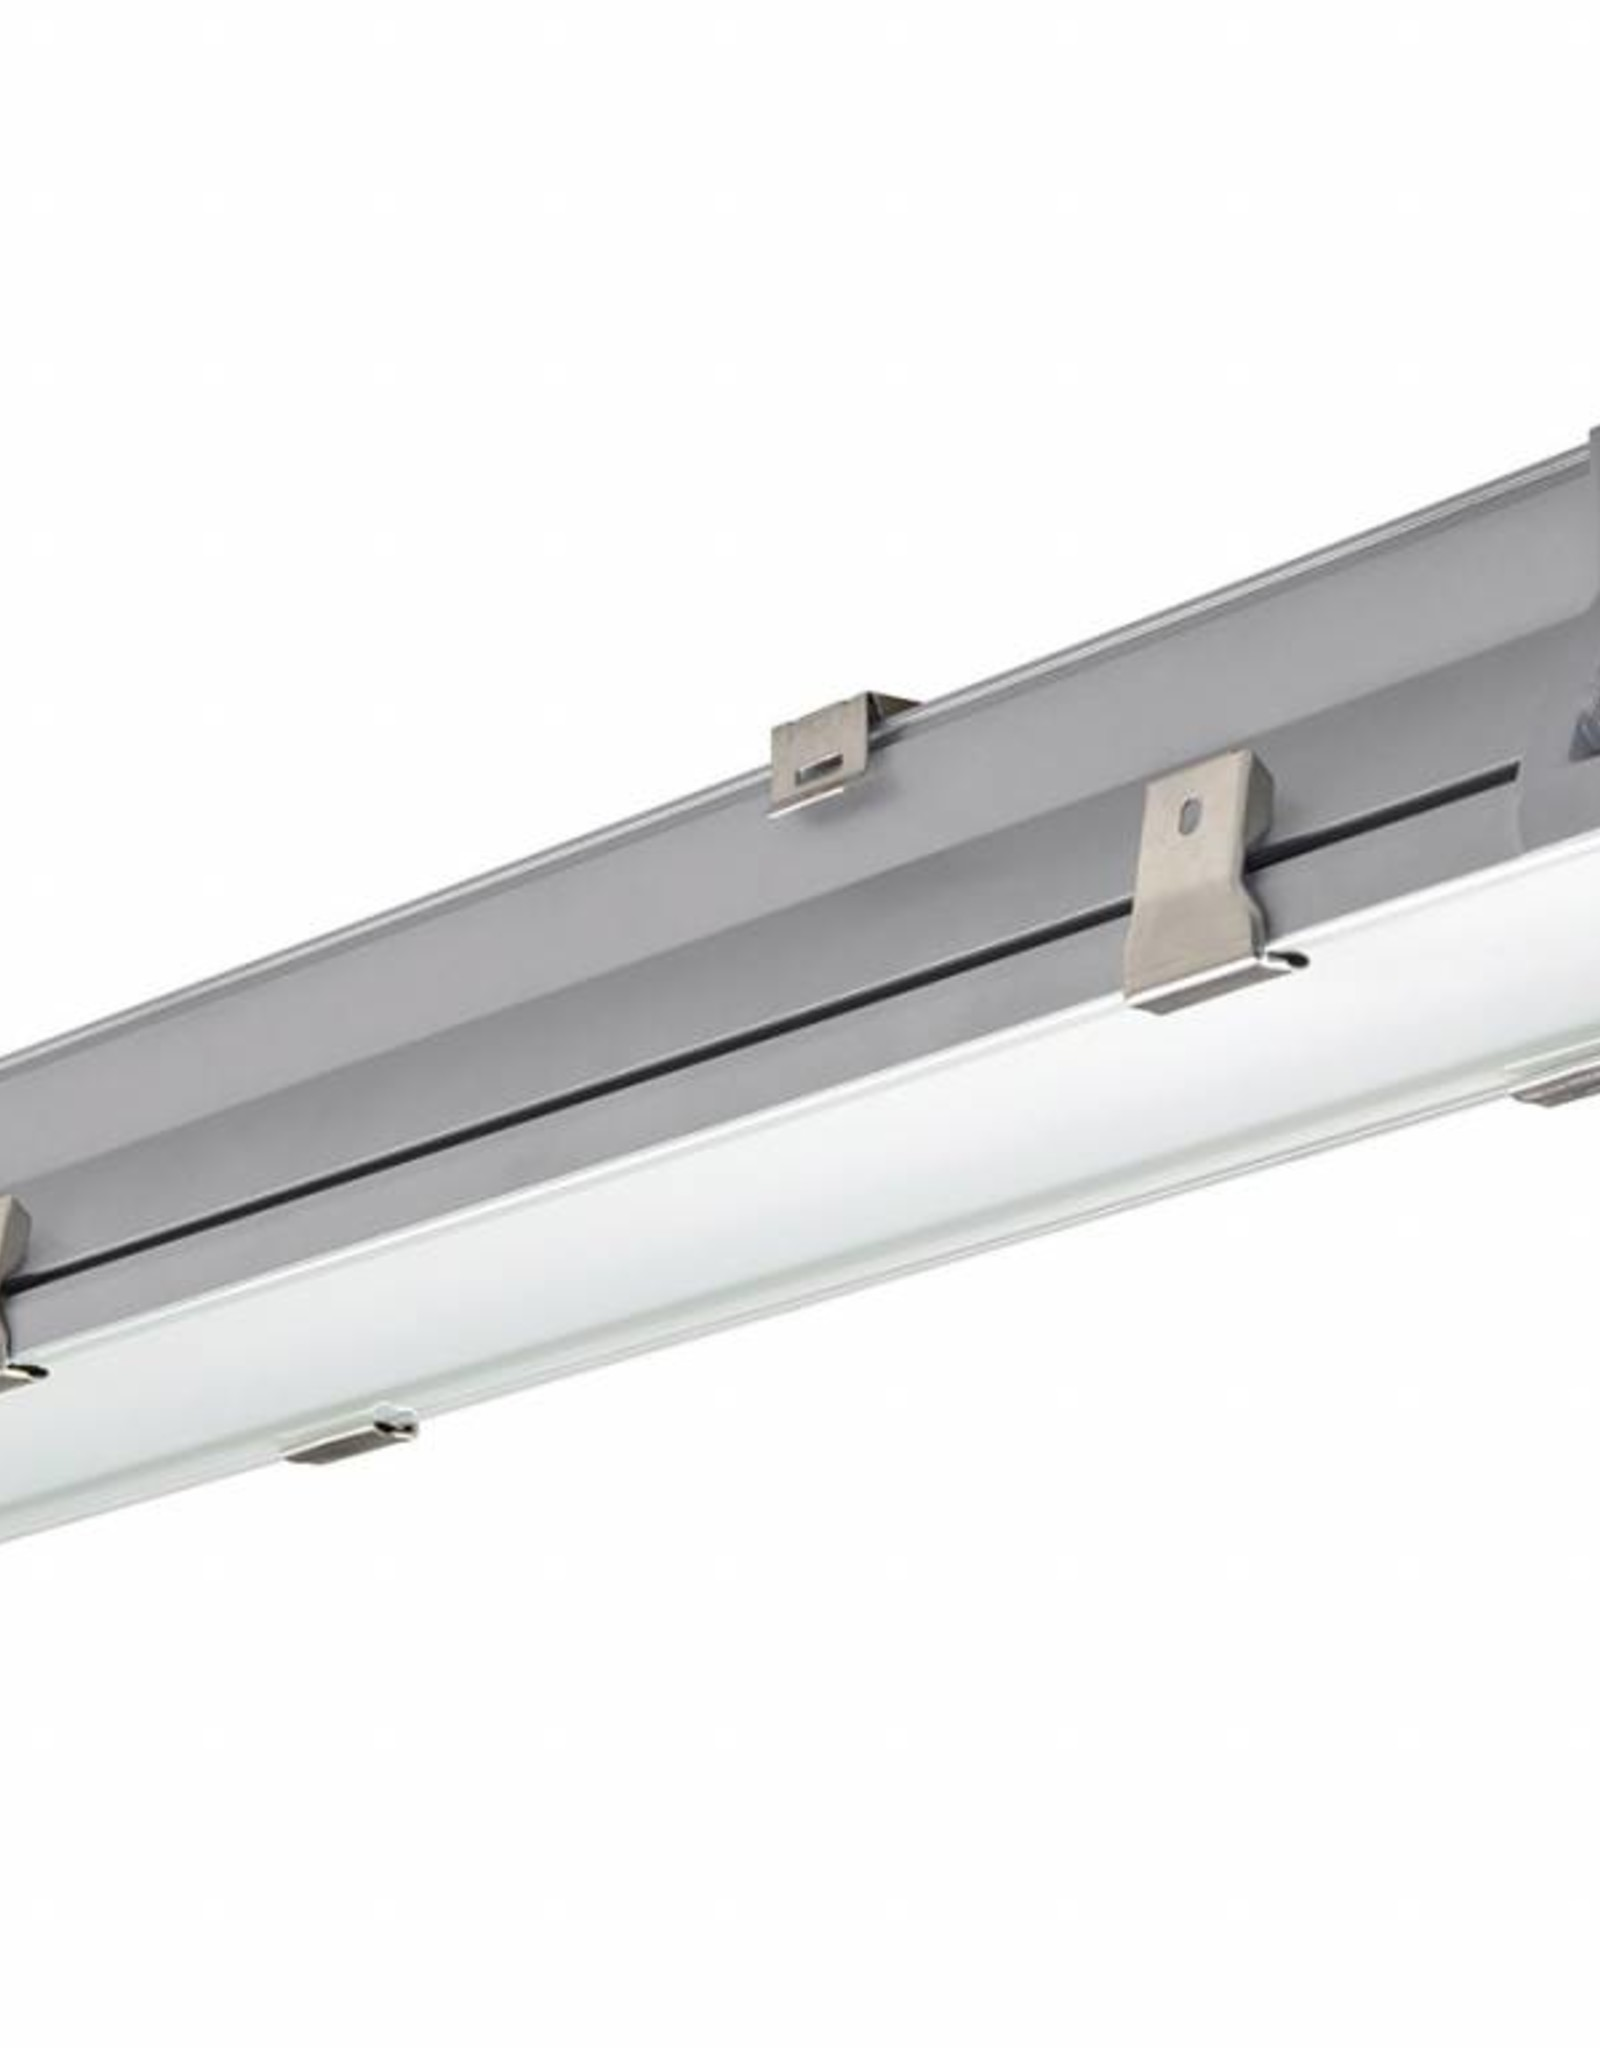 ALUMAX LED 1.2 Ft 1600/840